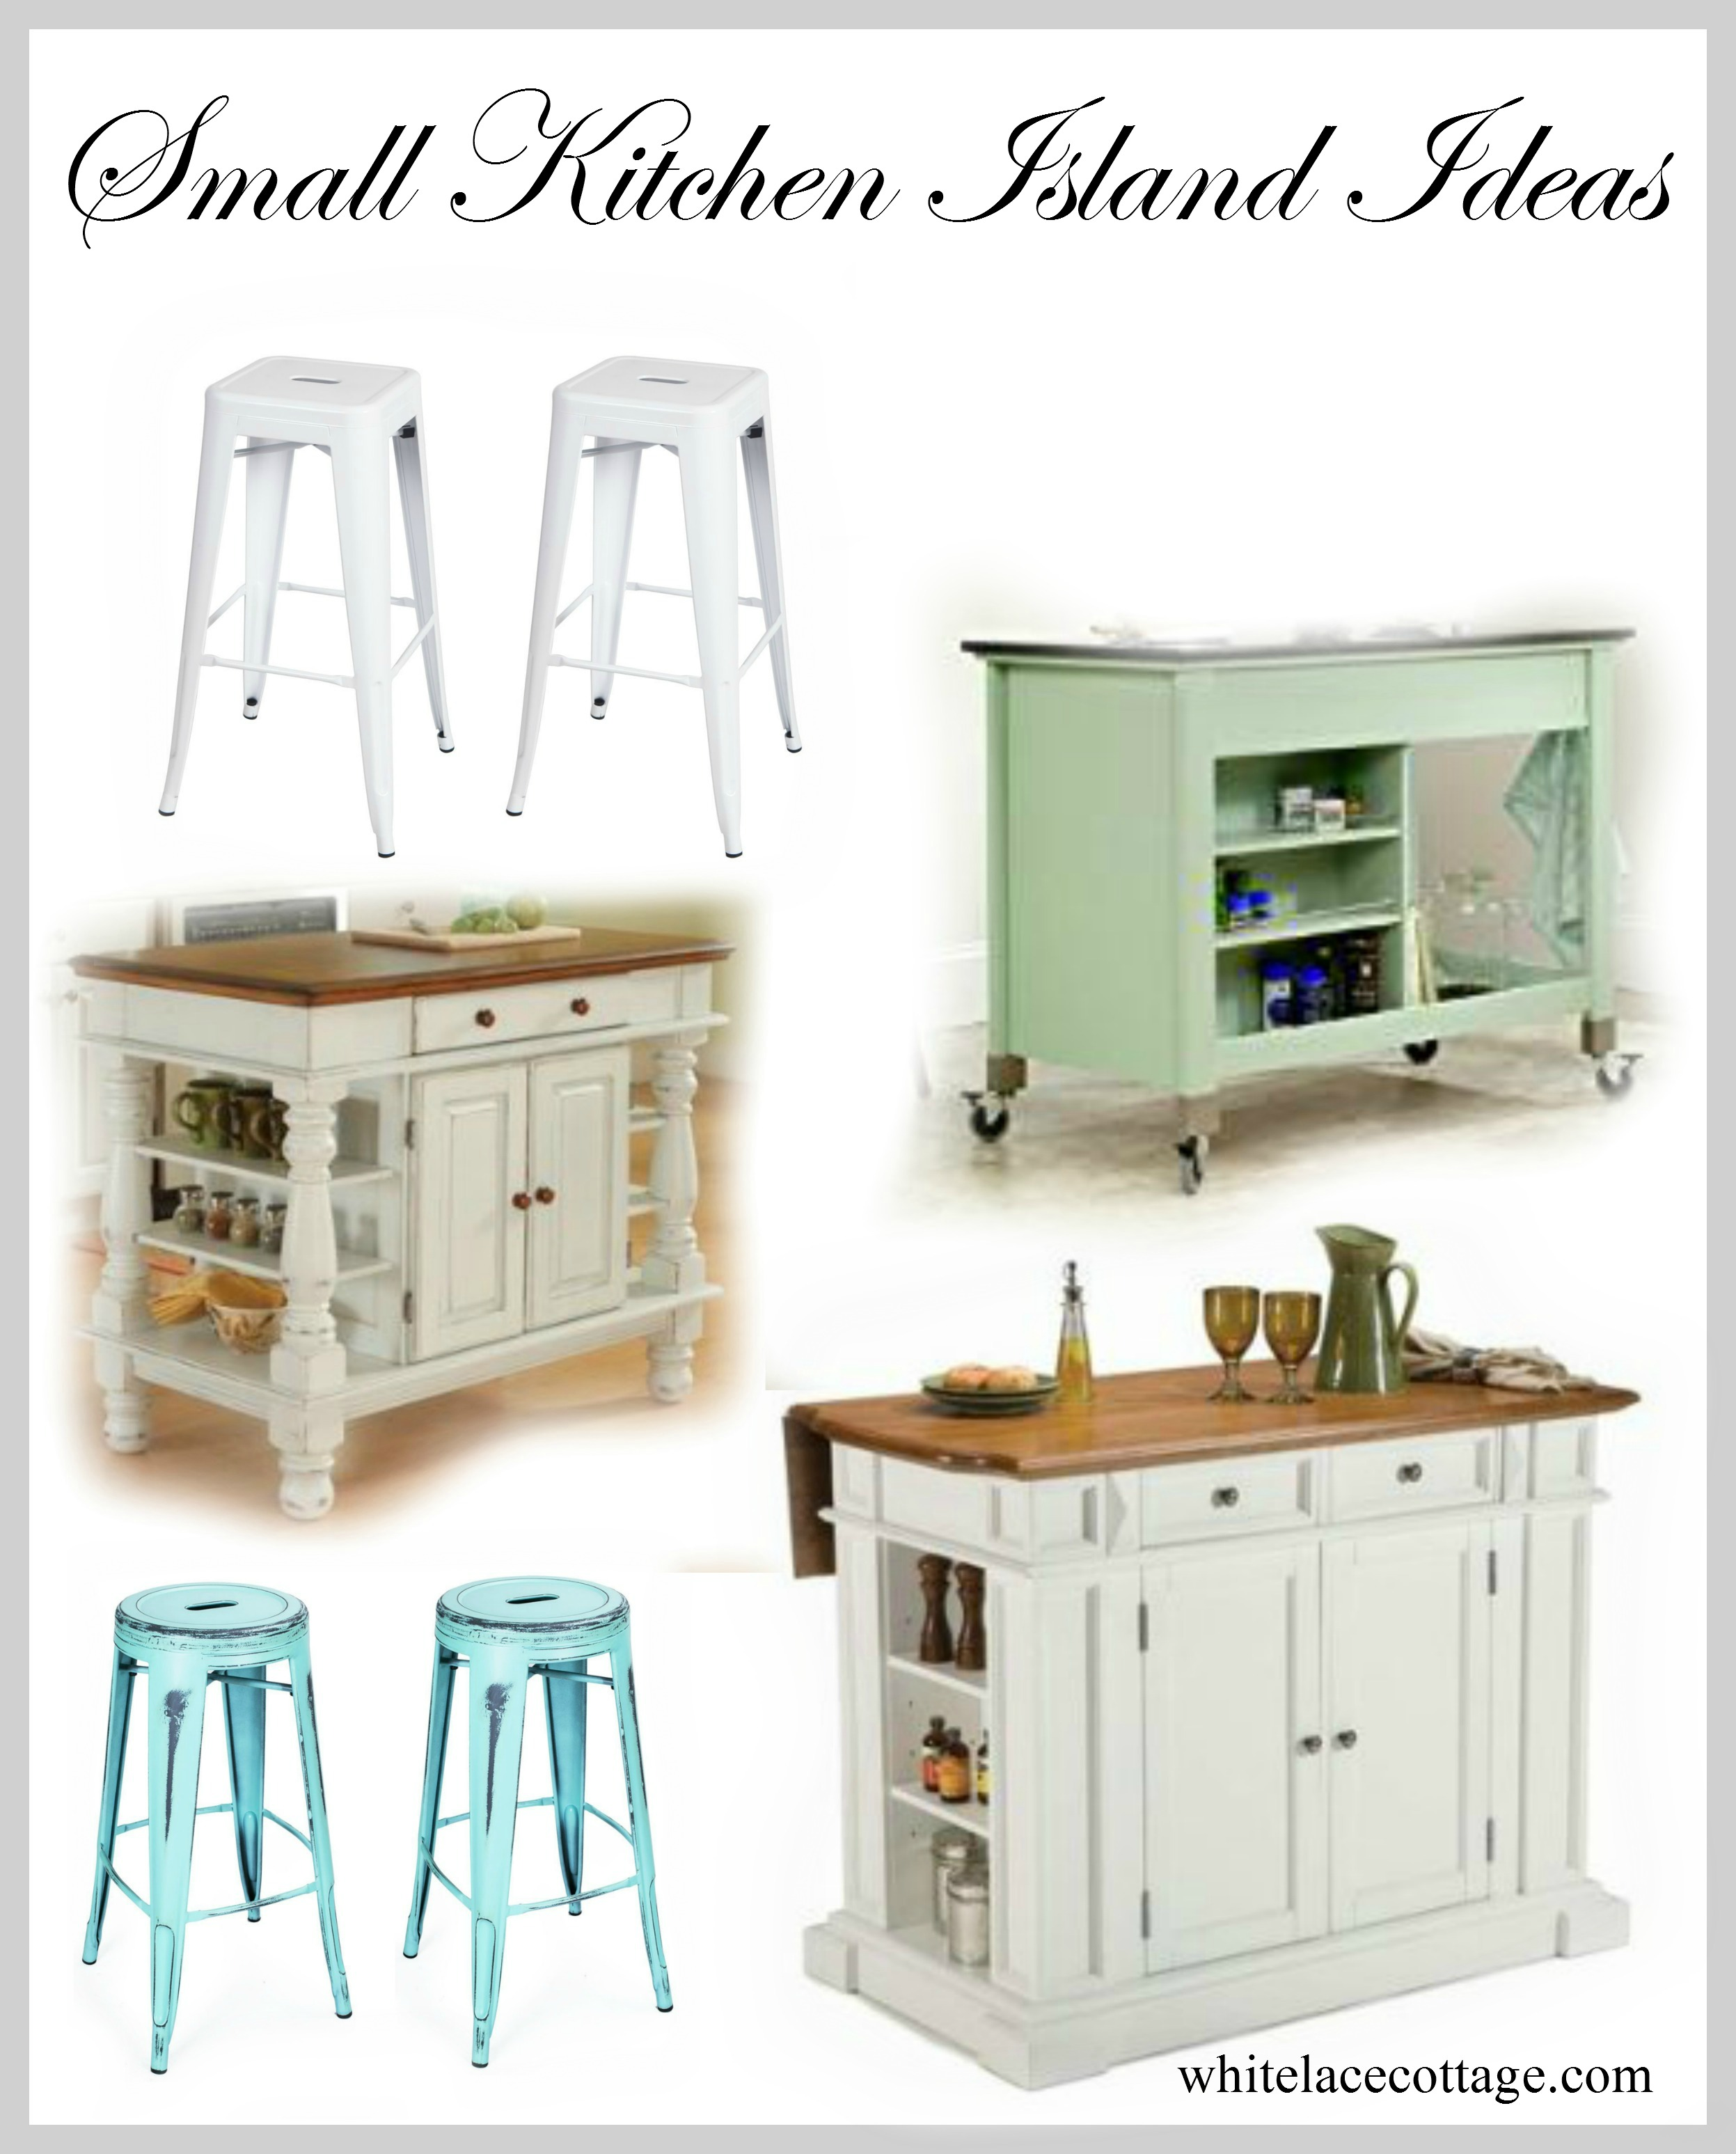 kitchen island small small kitchen island ideas with seating white lace cottage 2008